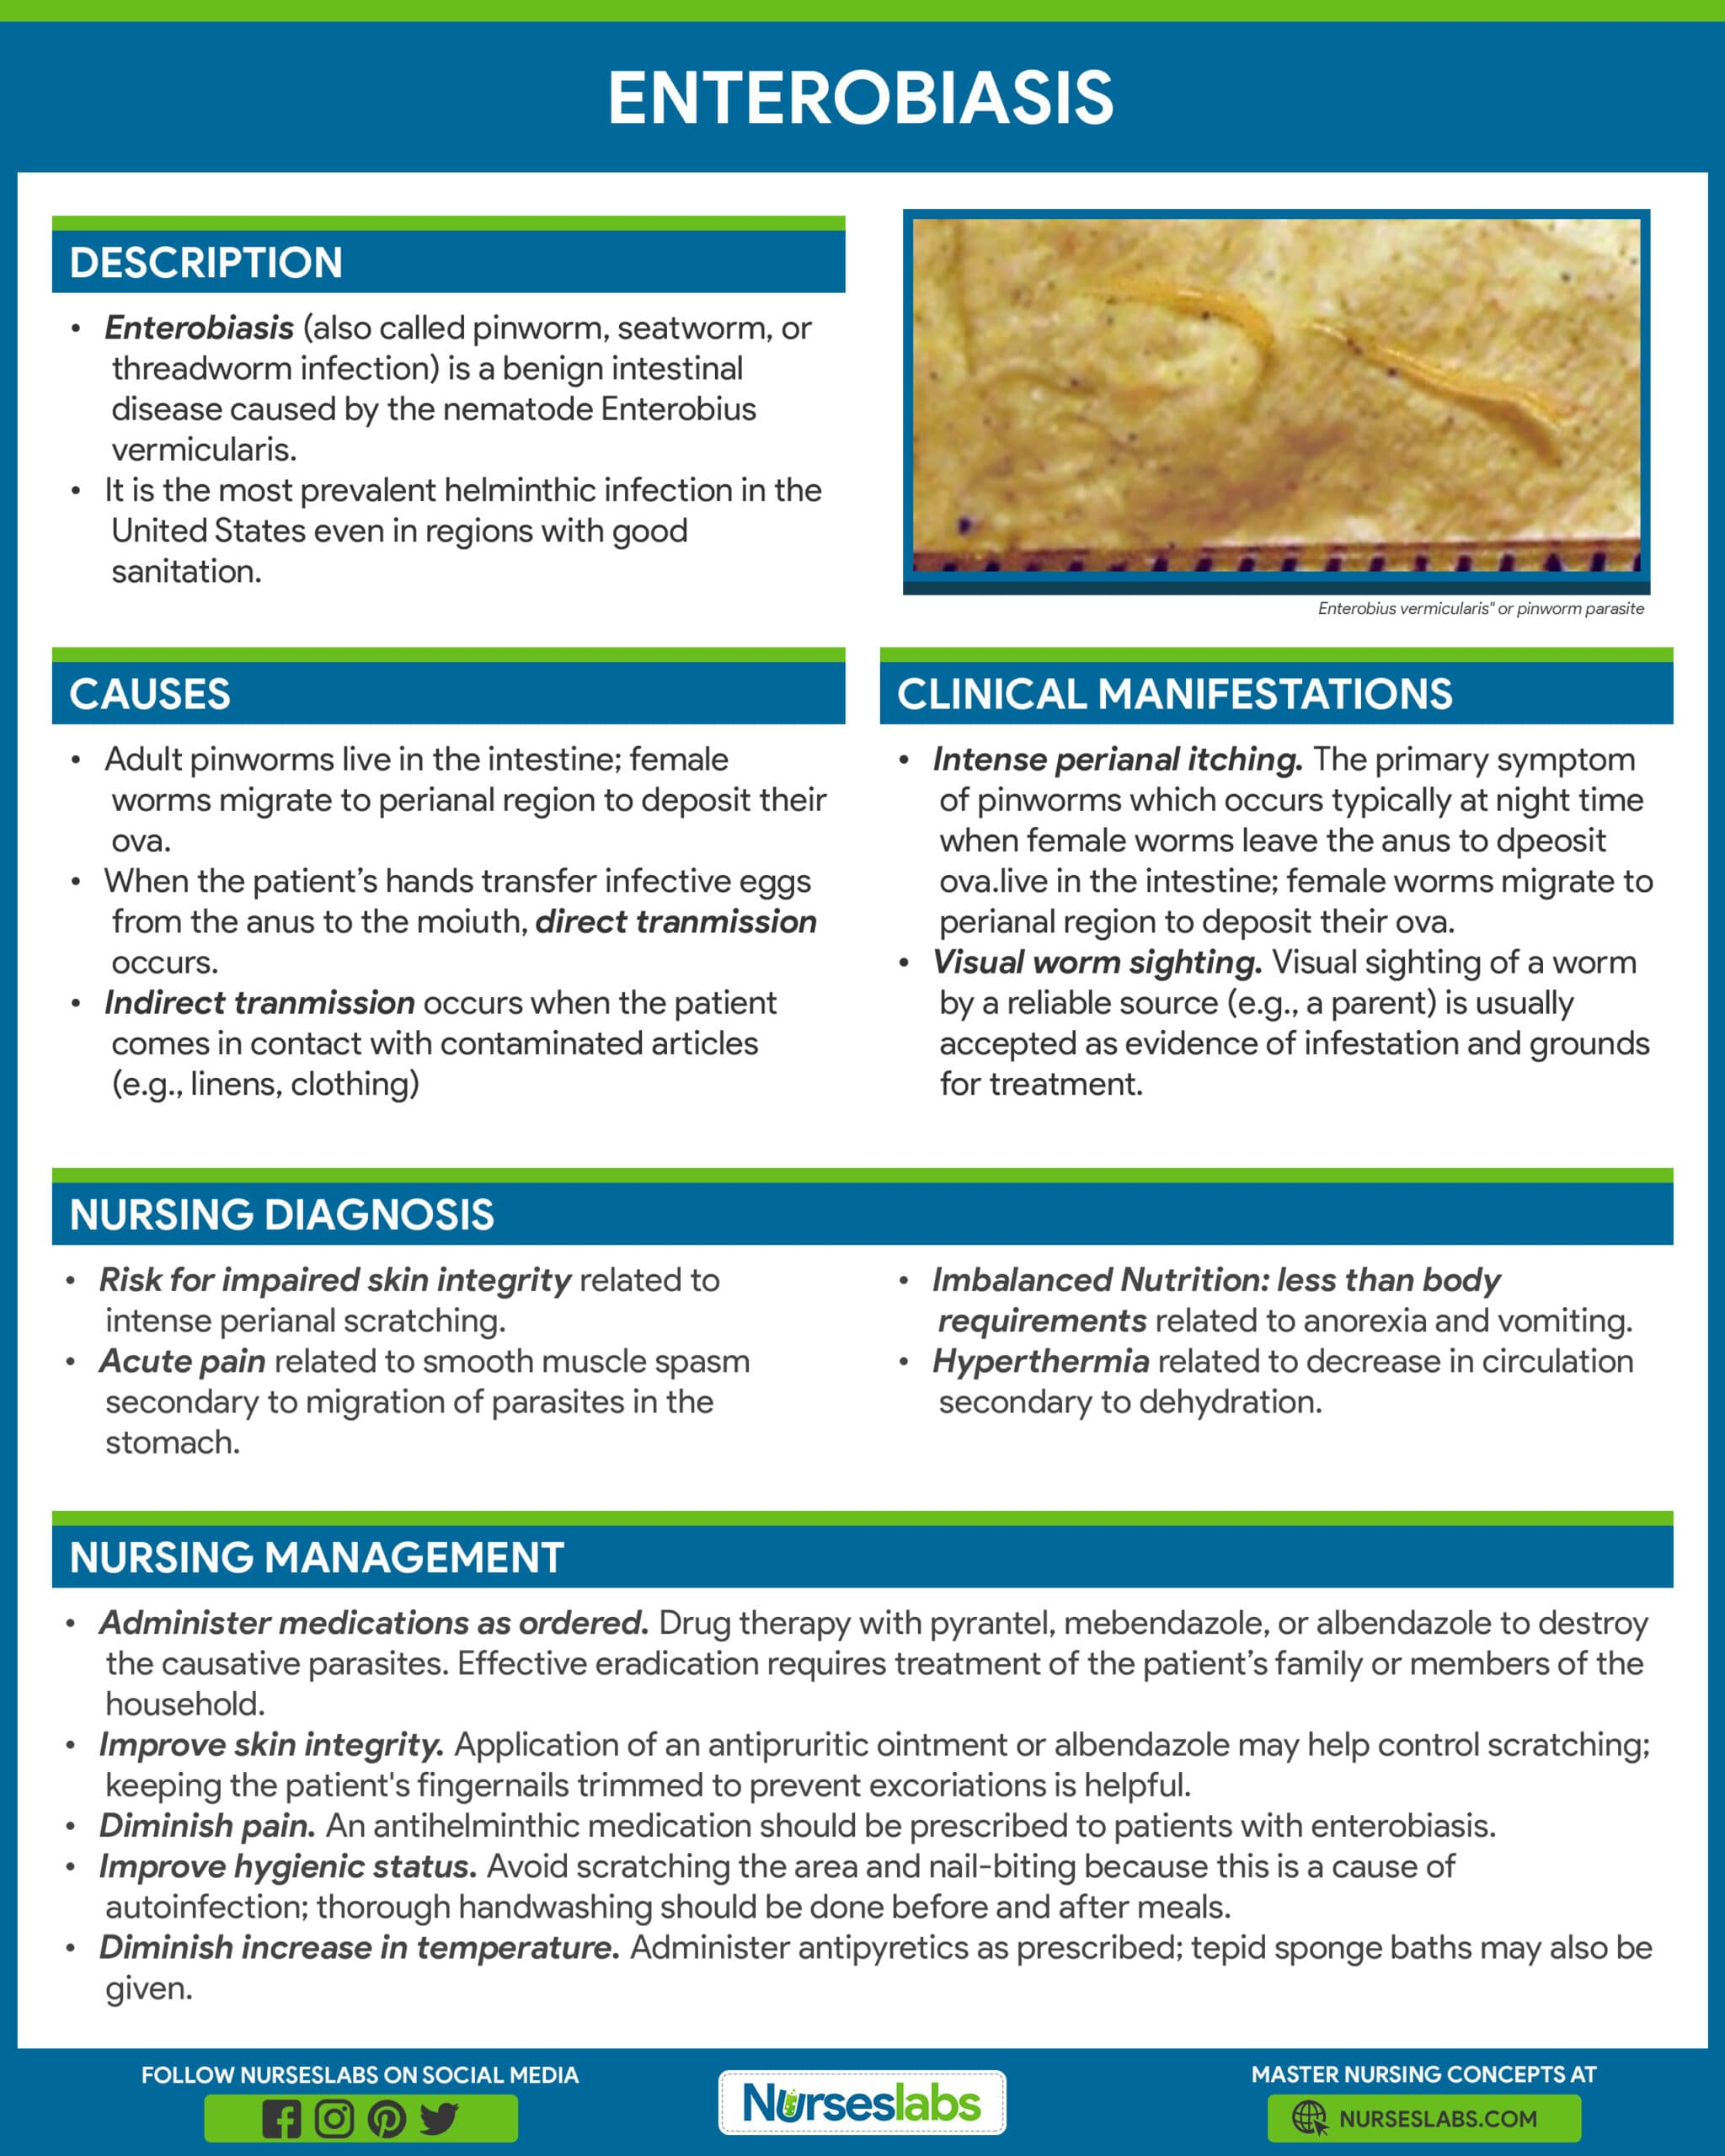 Enterobiasis Nursing Care Management and Care Planning Infographic Poster